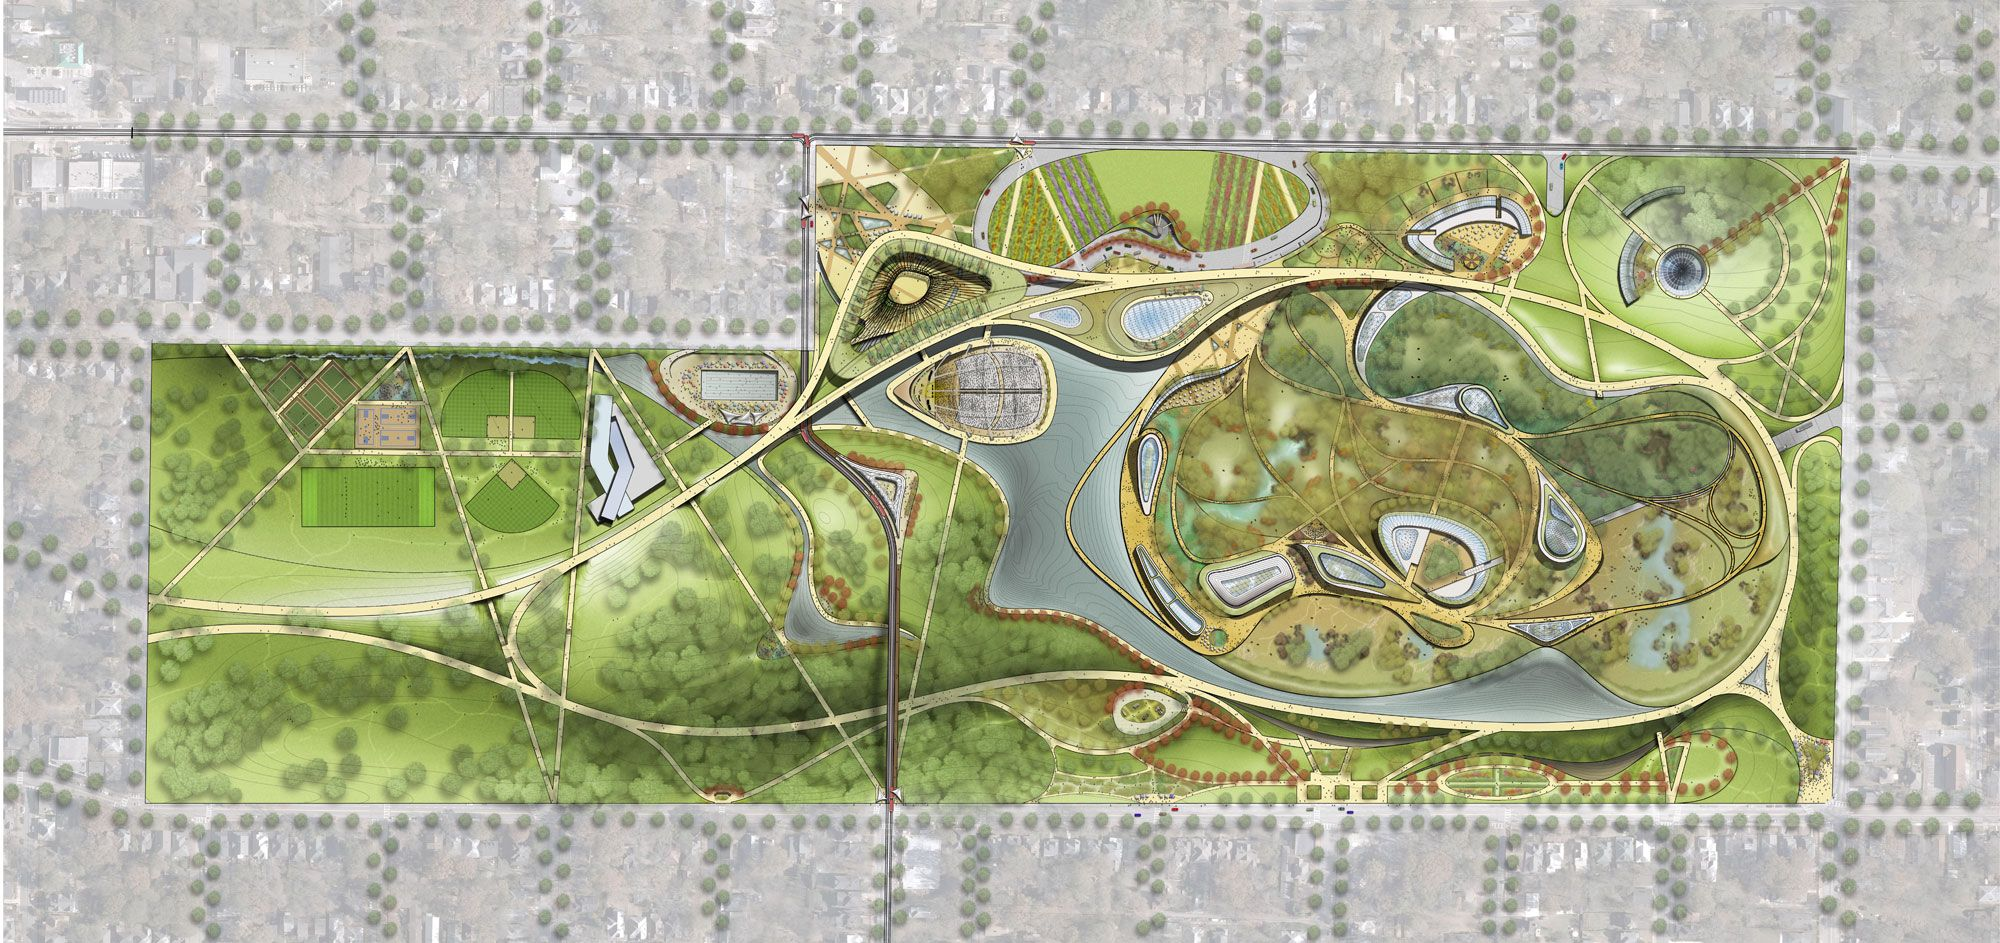 Grant park and zoo atlanta masterplan landscape plans for Park landscape design